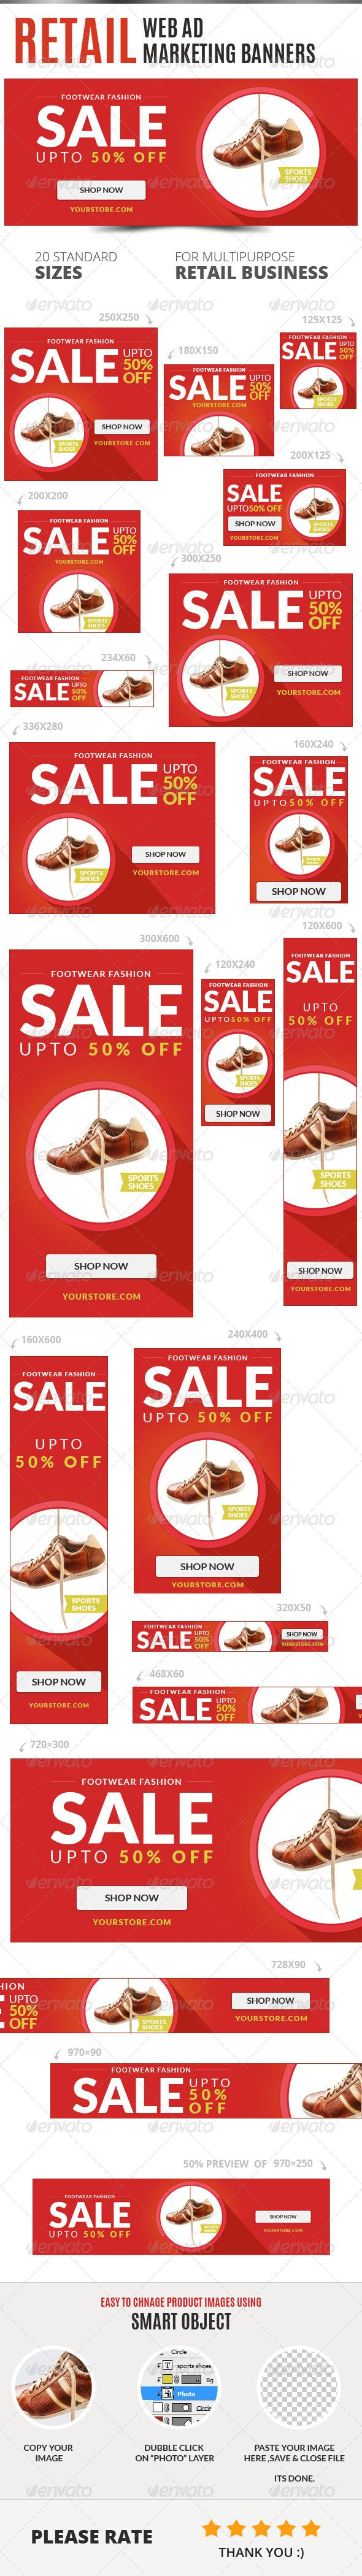 Digital banner design for psd files - Retail Web Ad Marketing Banners